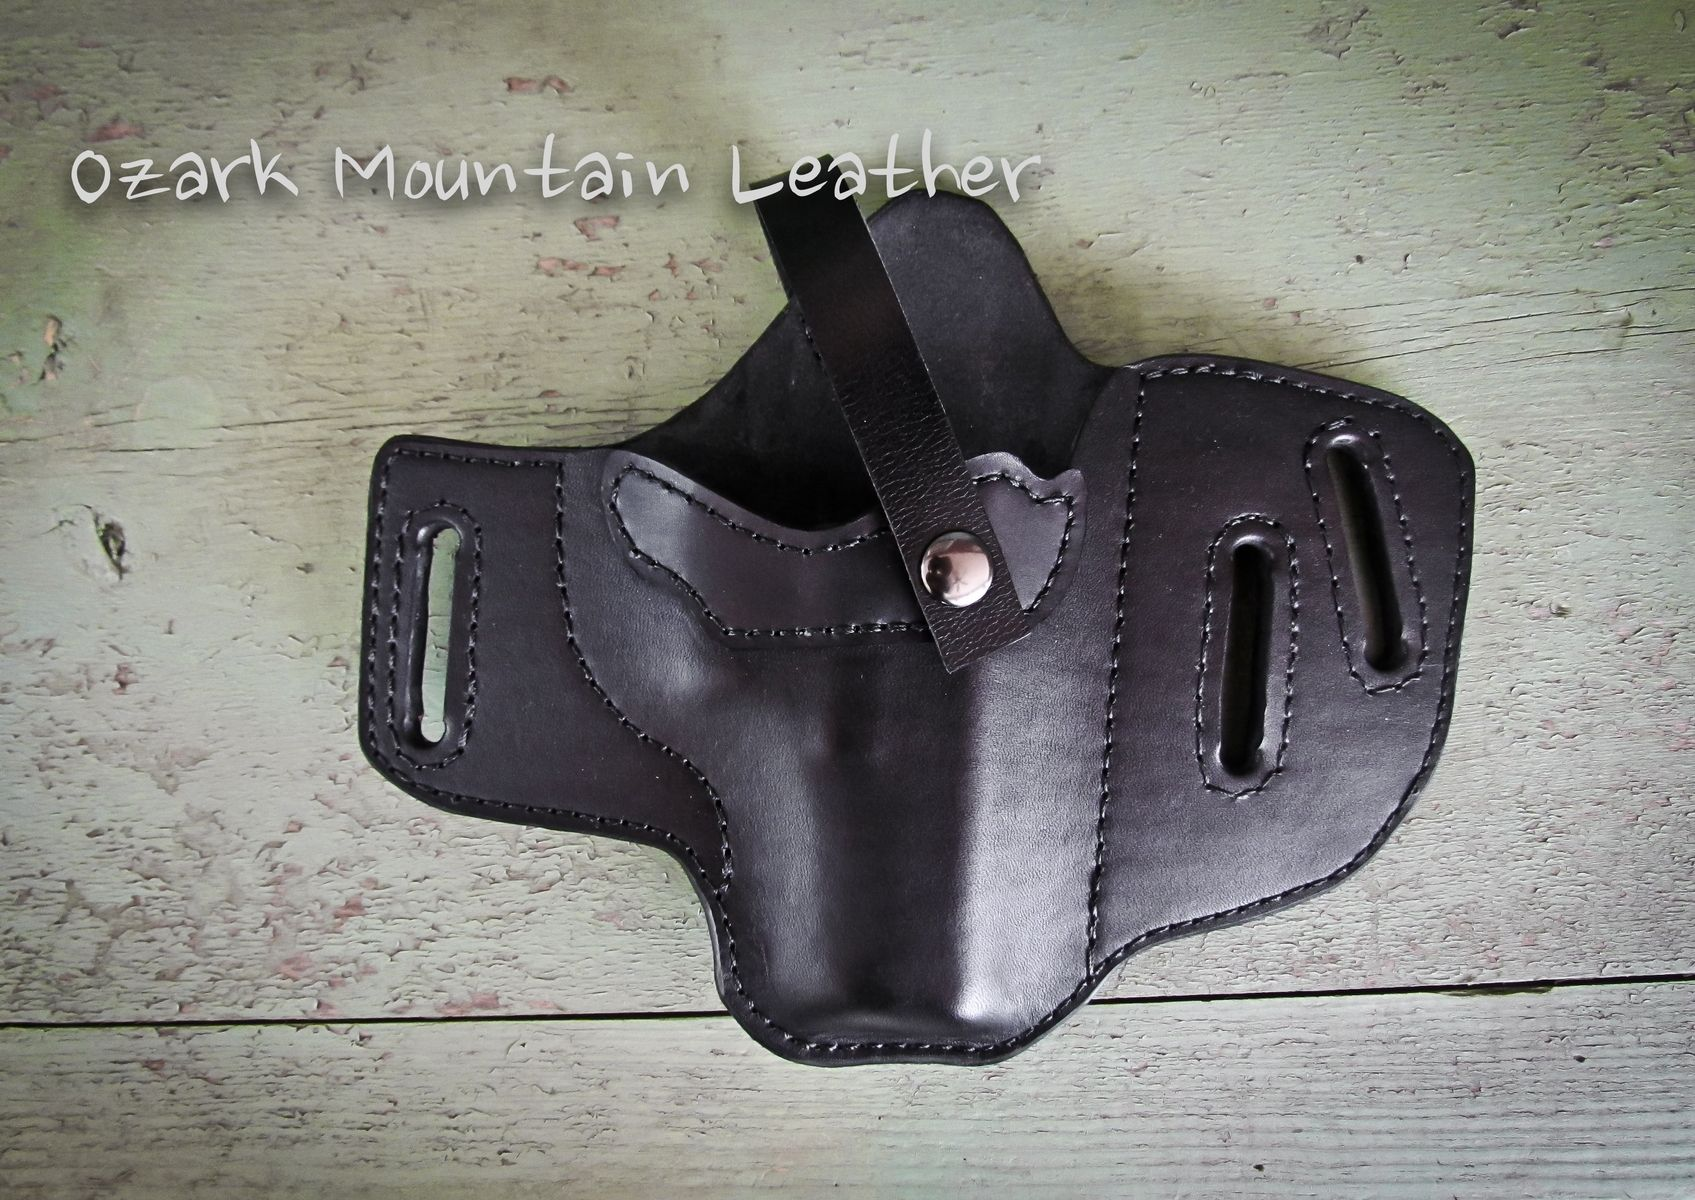 Buy a Hand Crafted Custom Leather Gun Holster Black For